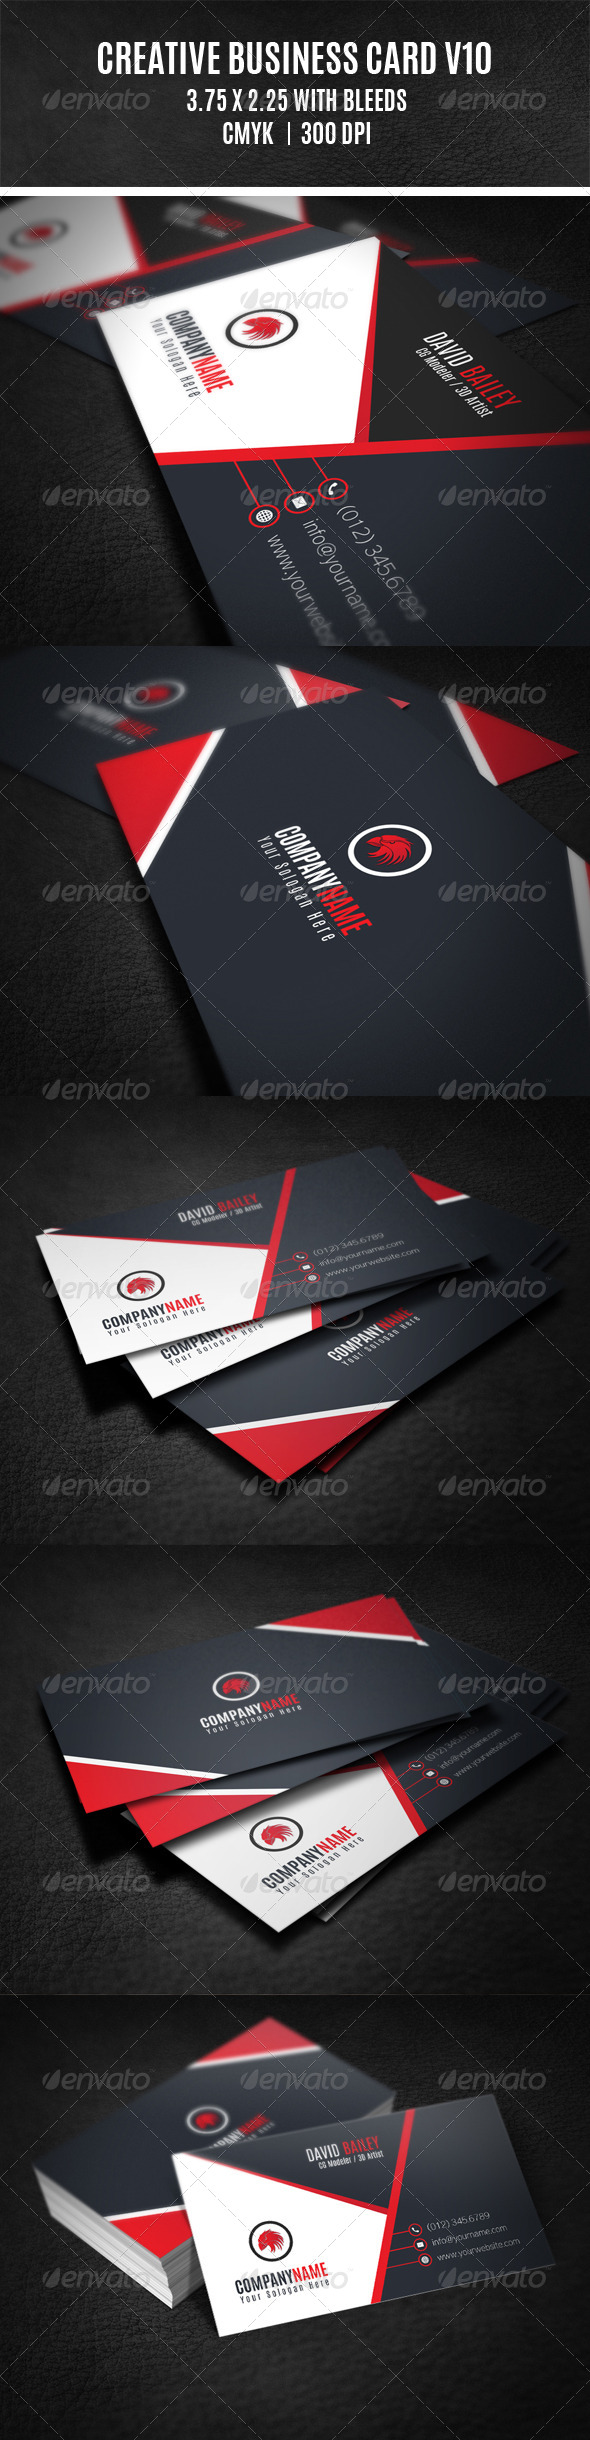 GraphicRiver Creative Business Card V10 8659234